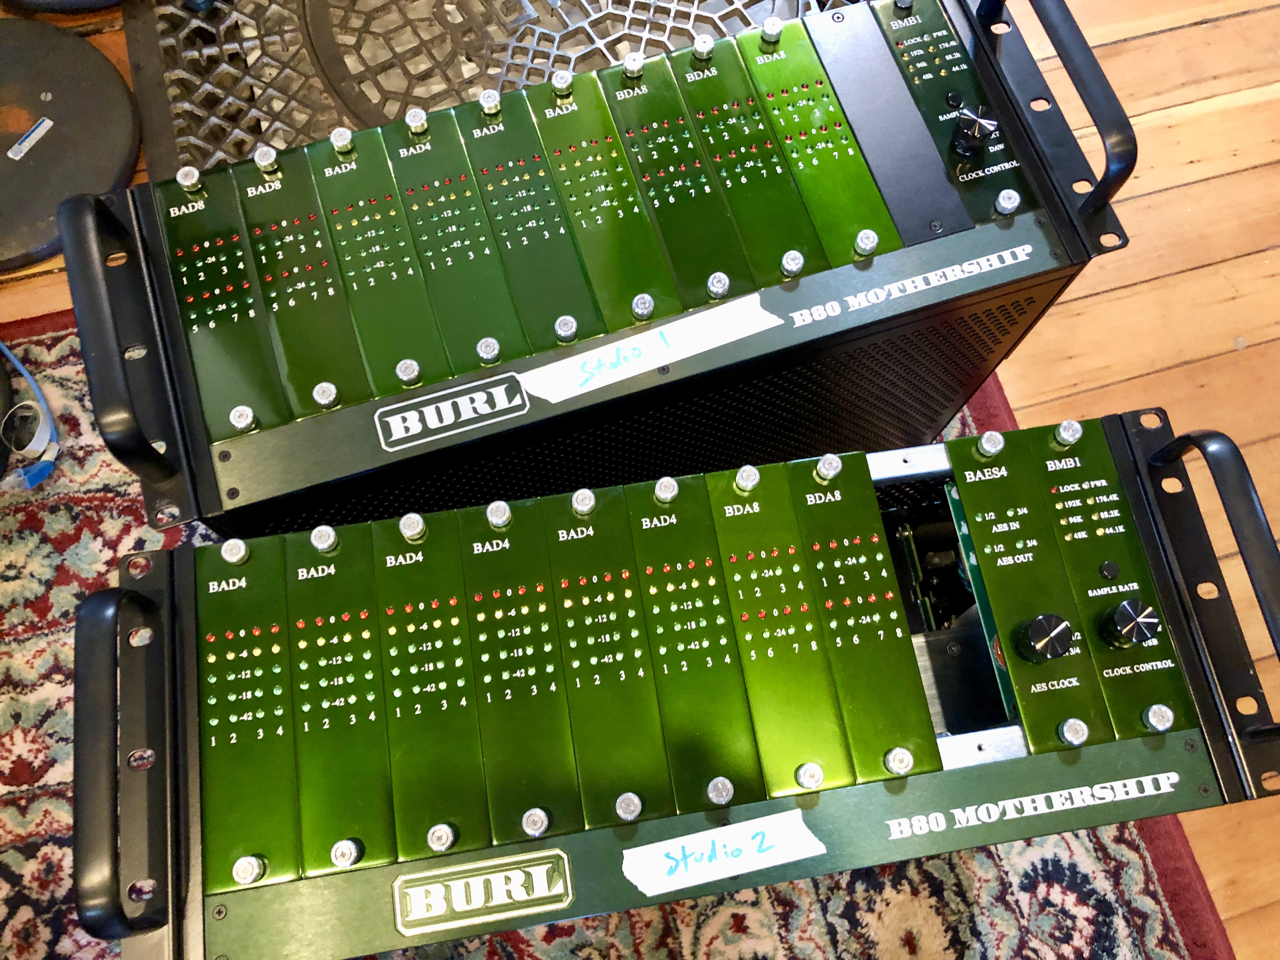 Getting the Burl Motherships configured for the two studios. Studio 1 will be 32 in 32 out and studio 2 will be 24 in 24 out.